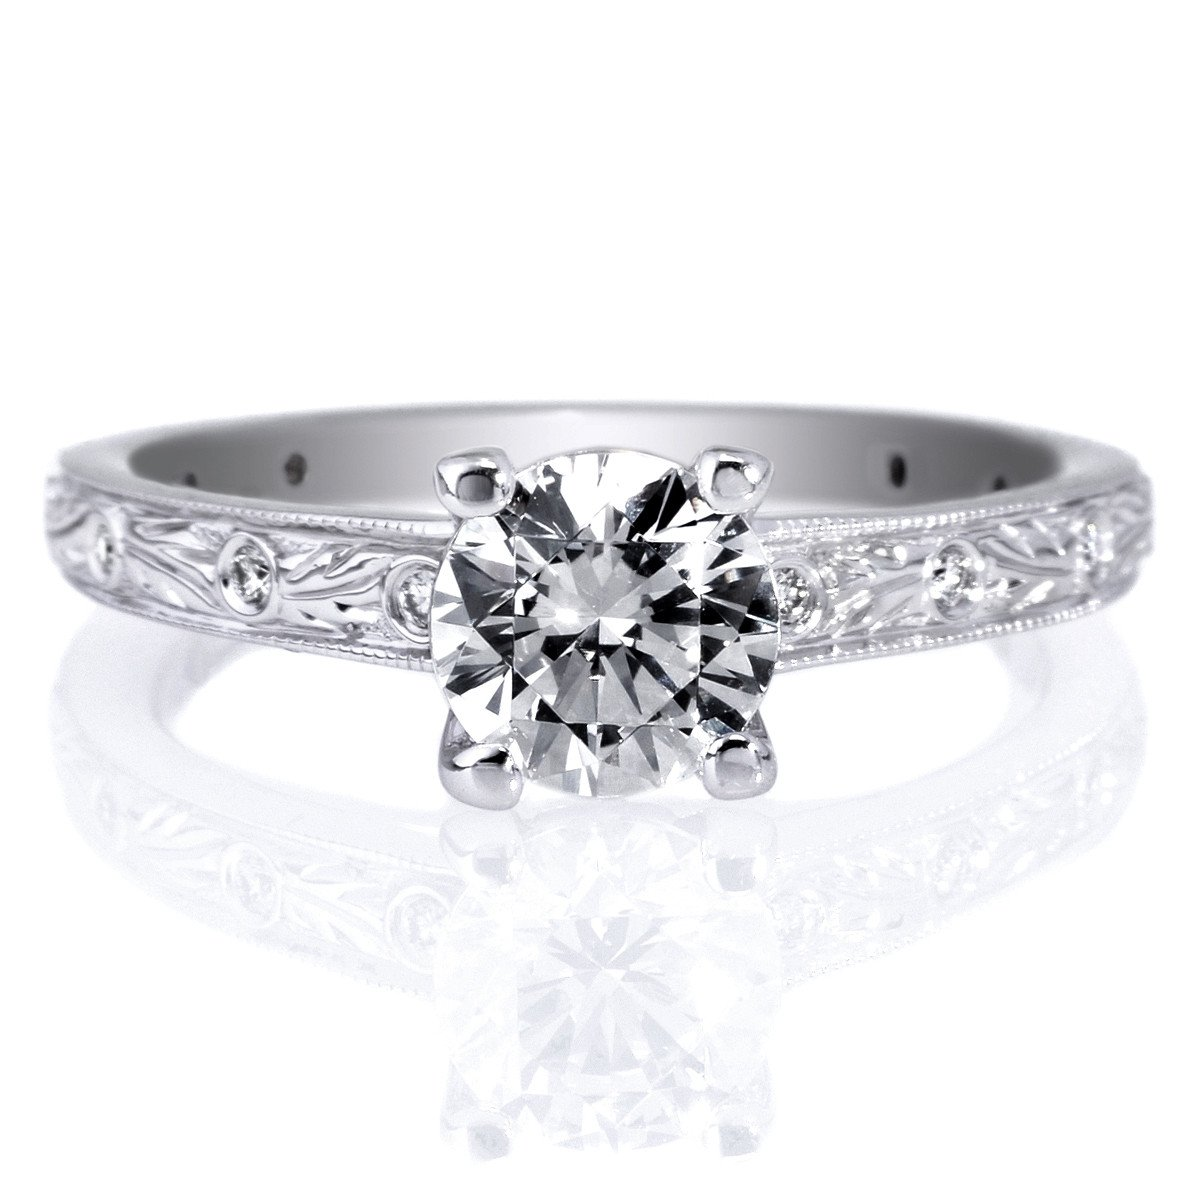 6 Unique Vintage Inspired Engagement Rings We're Loving Right Now